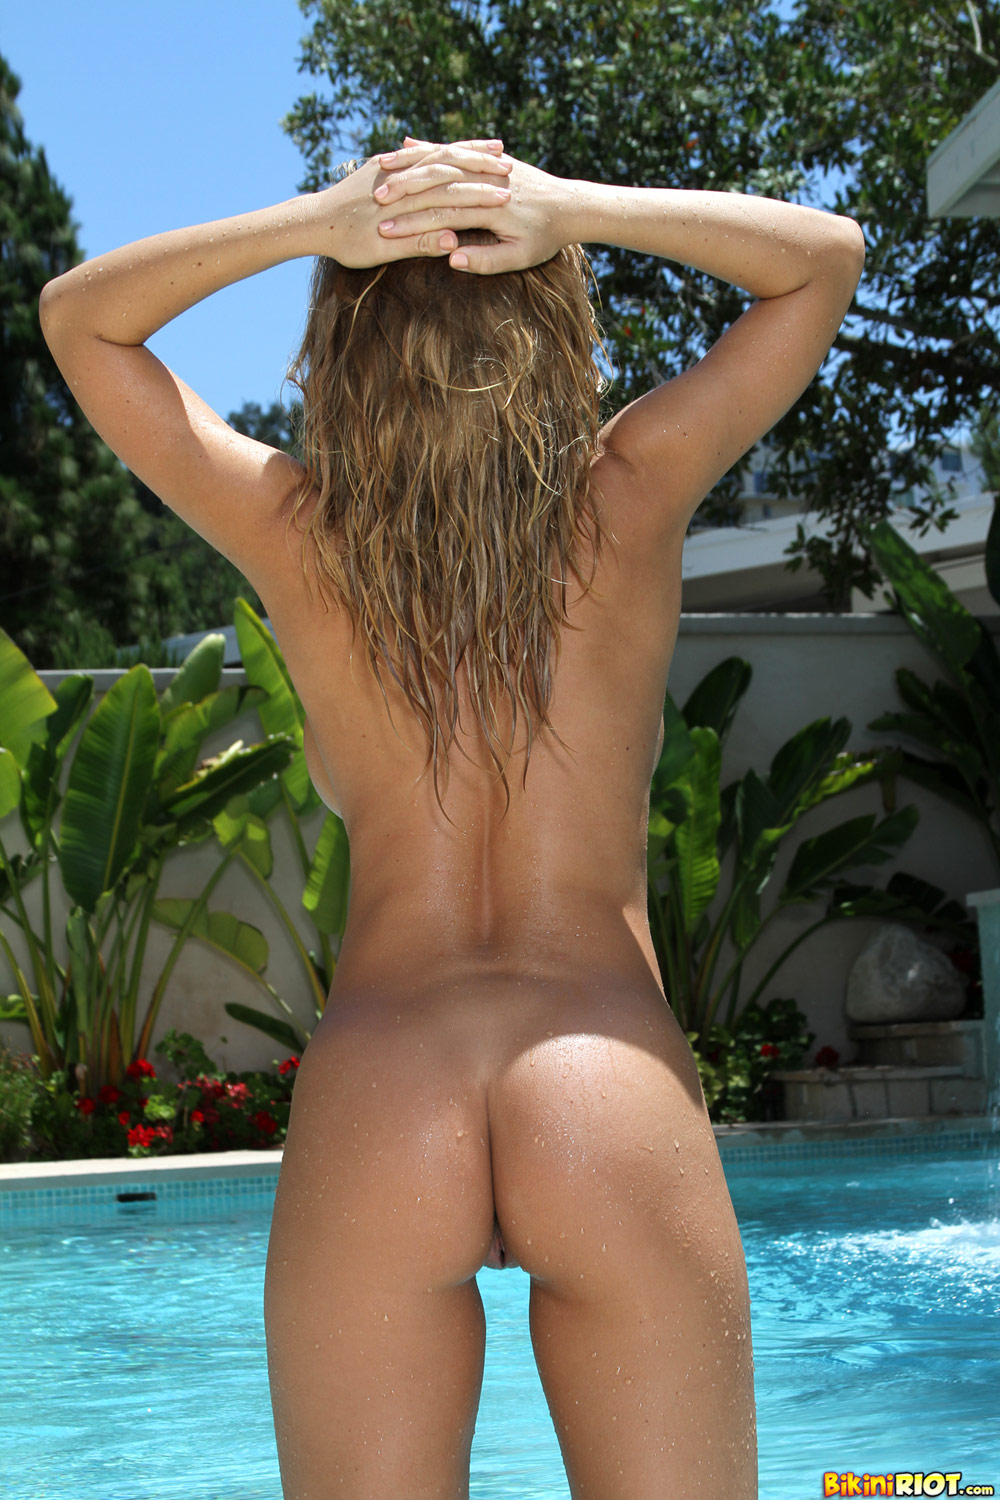 Was and a thong bikini on have faced